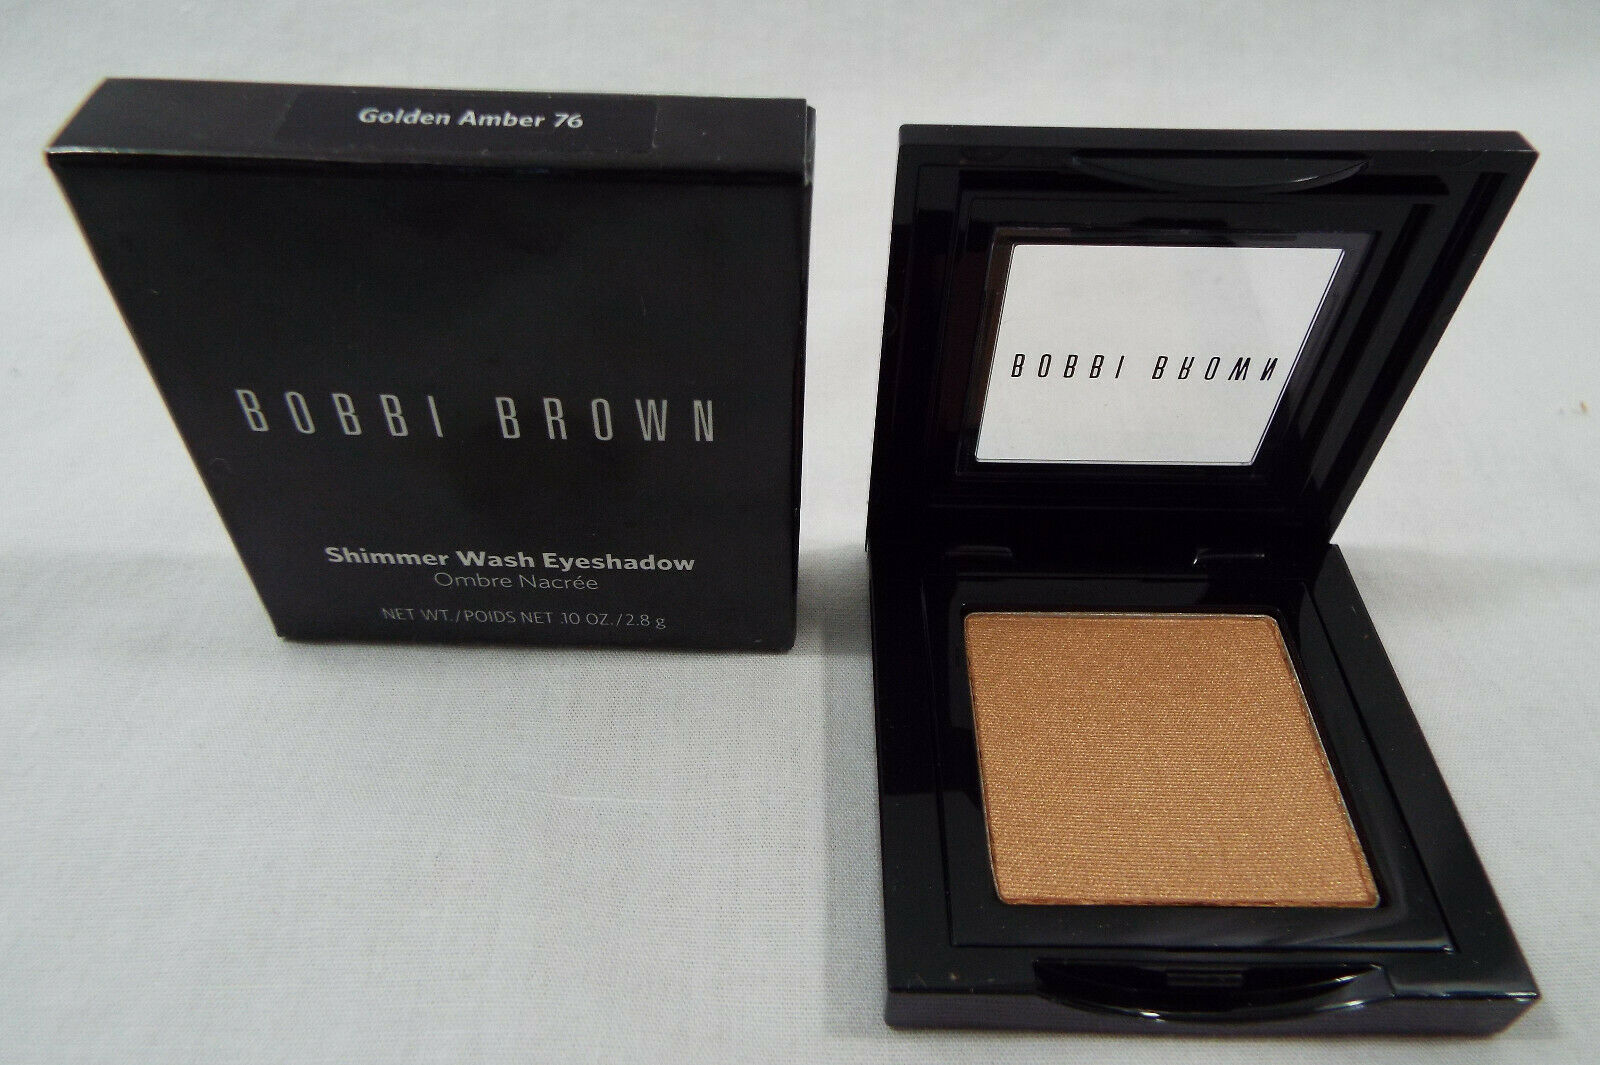 Primary image for Bobbi Brown in Shimmer Wash Eye Shadow in Golden Amber 76  .10 oz 2.8g